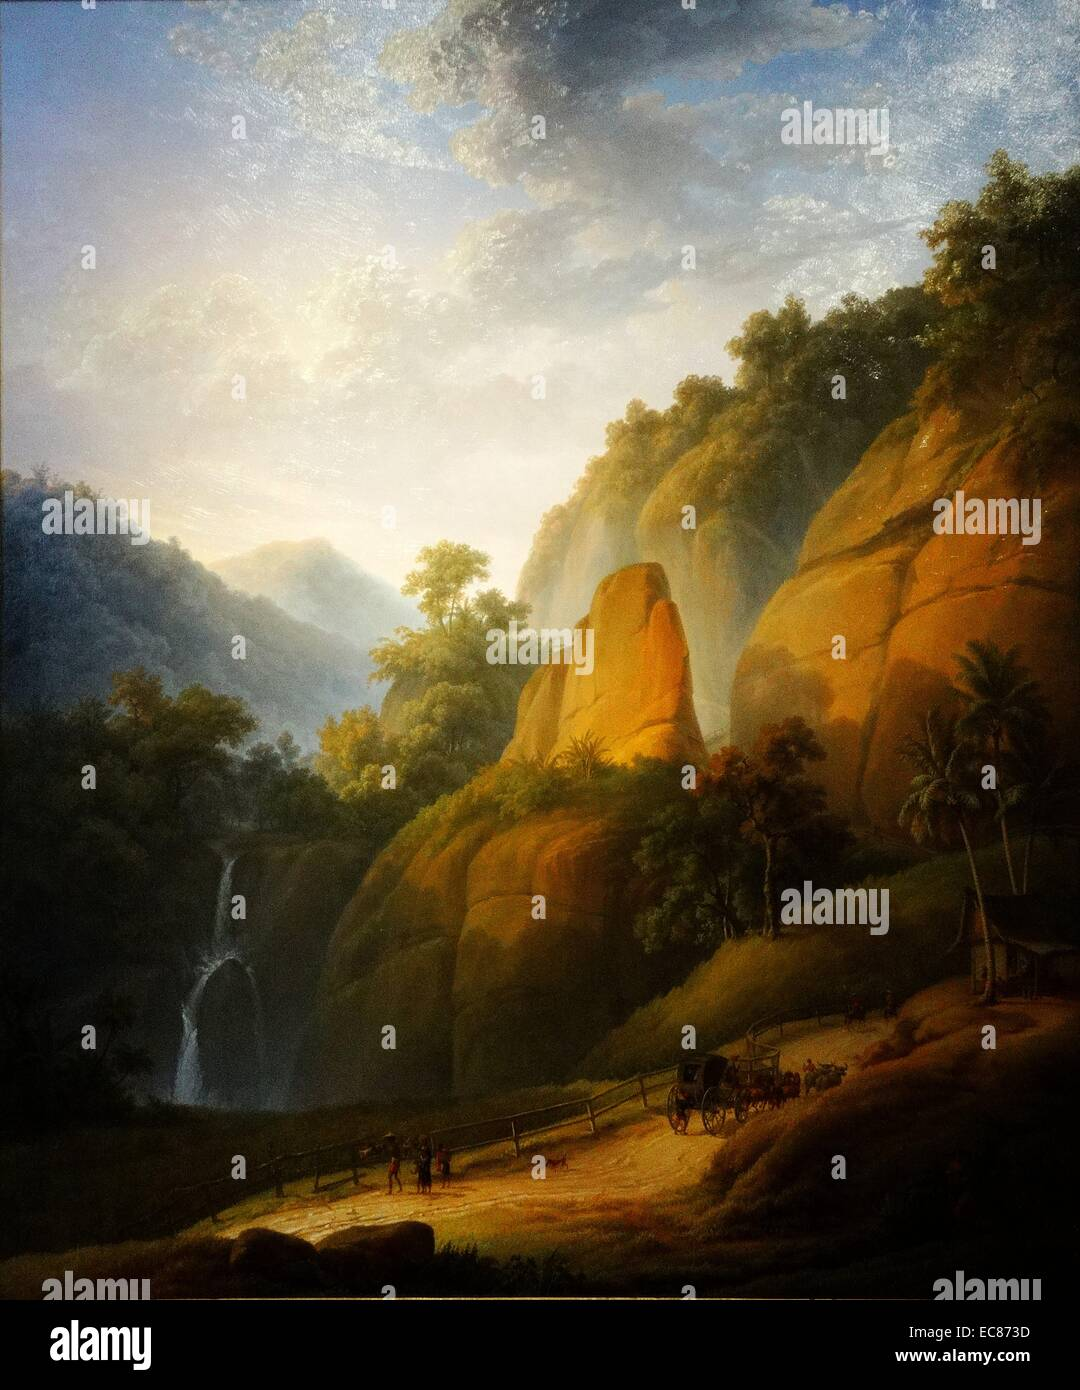 Painting titled 'The Great Postal Route near Rejapolah' Stock Photo